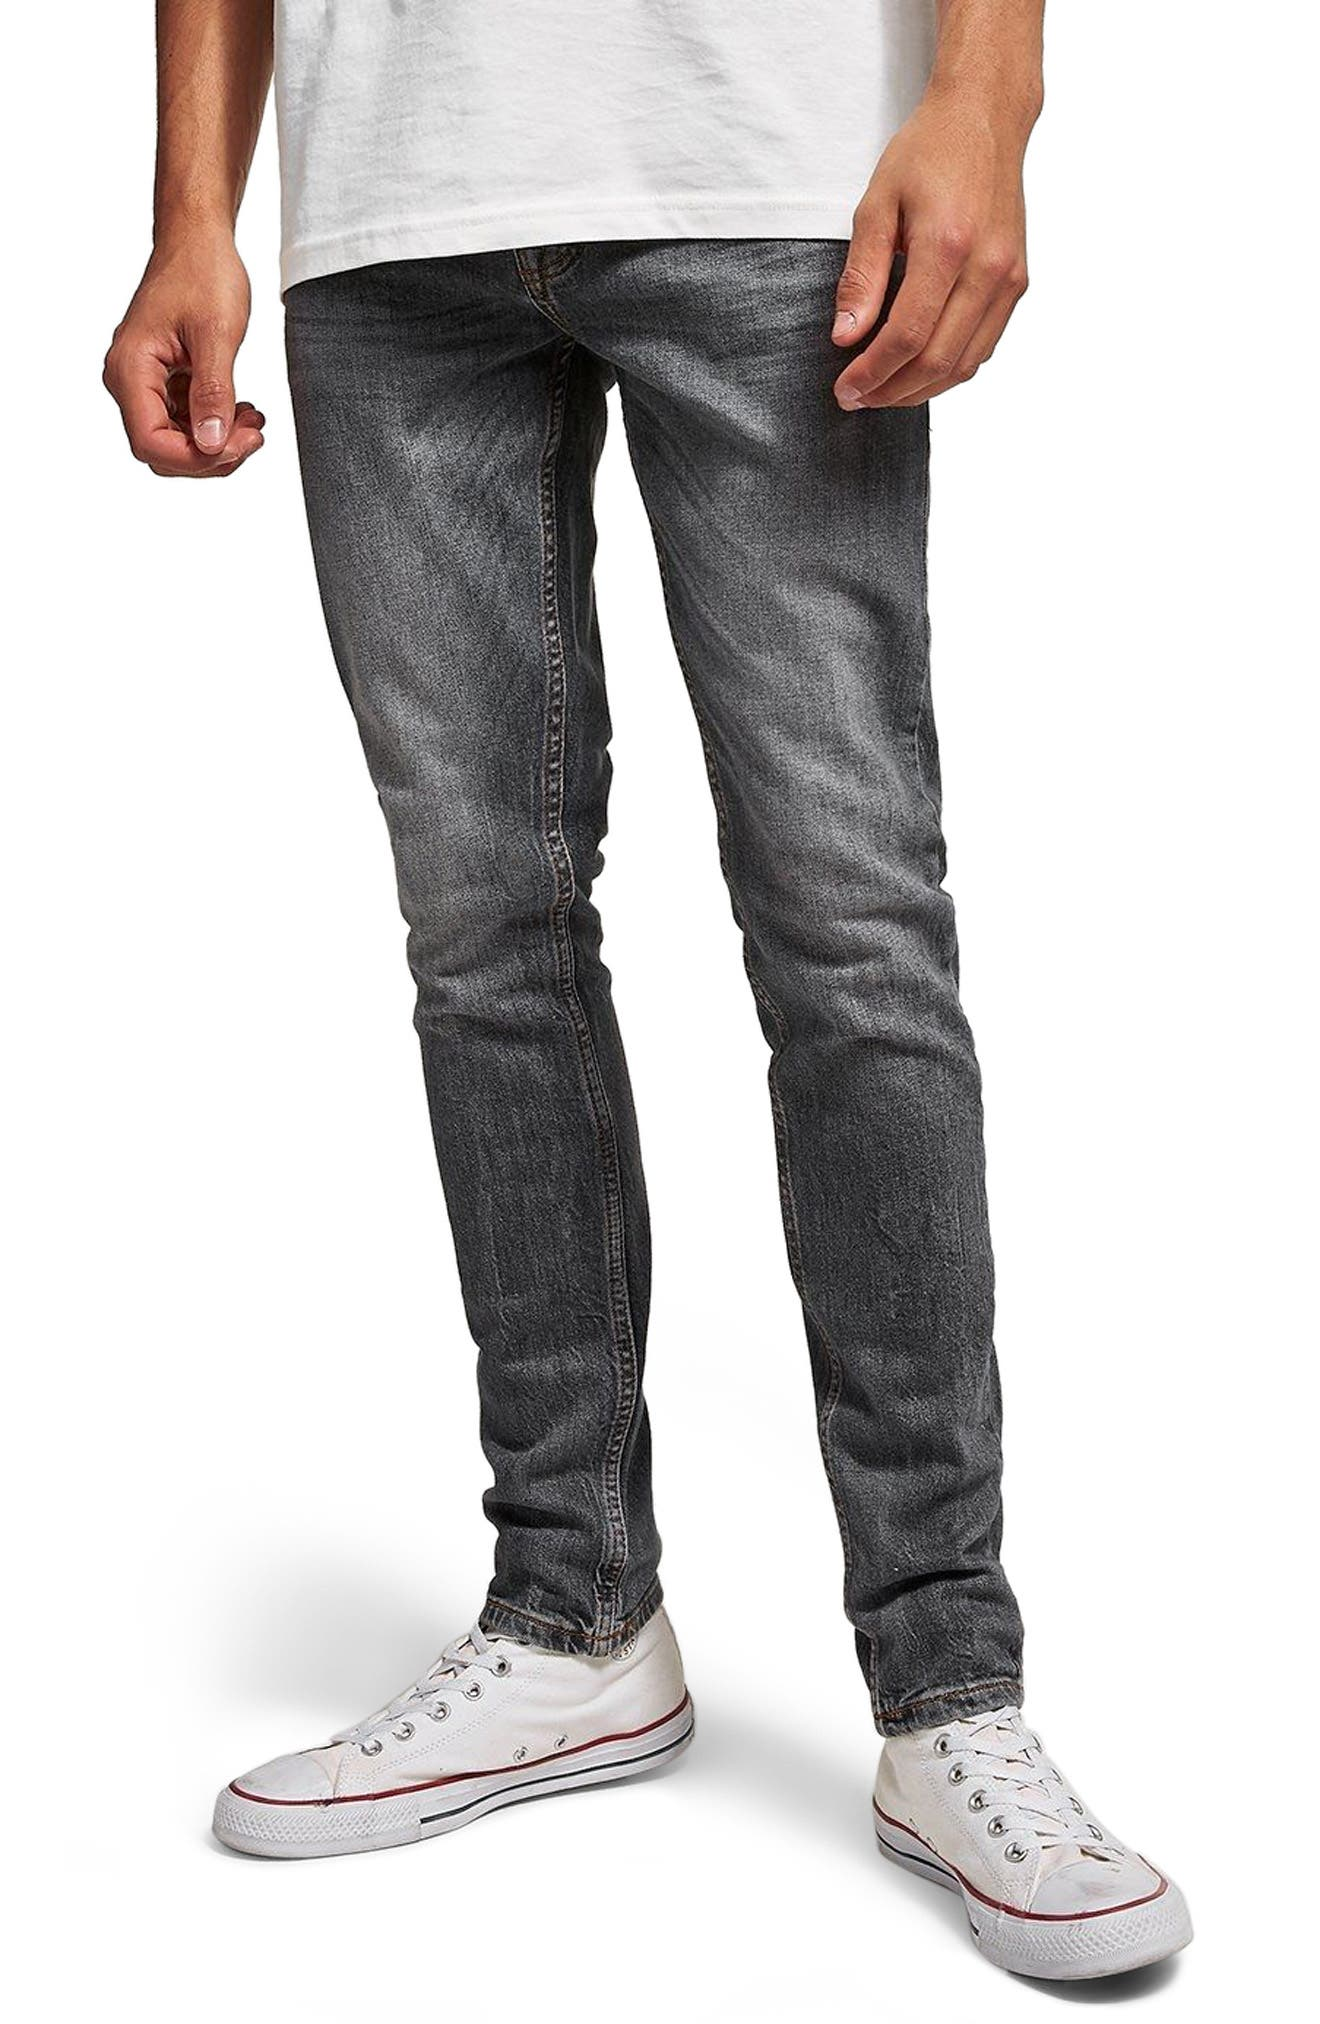 Stretch Skinny Fit Jeans,                             Main thumbnail 1, color,                             020